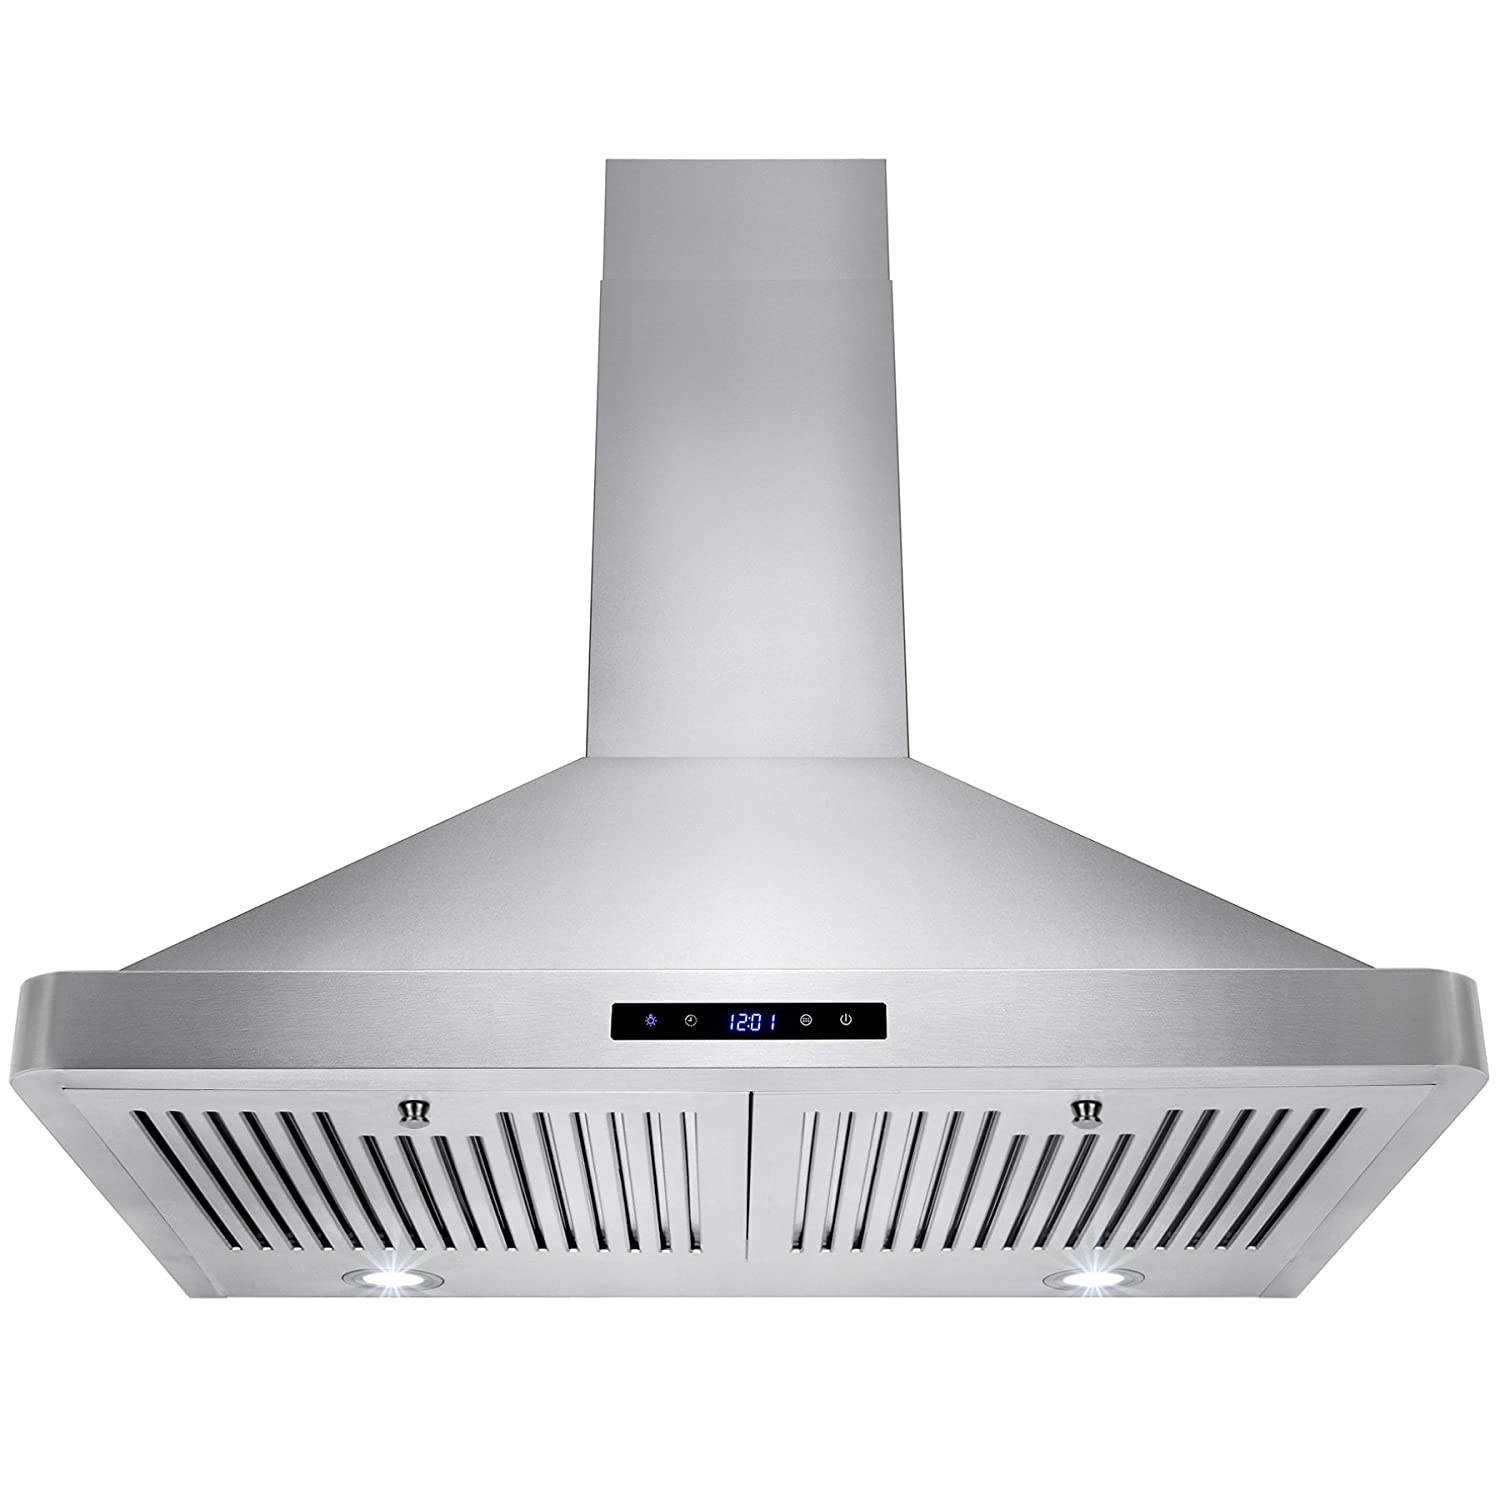 Golden Vantage 30 Wall Mount LED Display Touch Control High Quality Stainless Steel Vent Range Hood w/ Baffle Filters GV-RH0023-CF0001